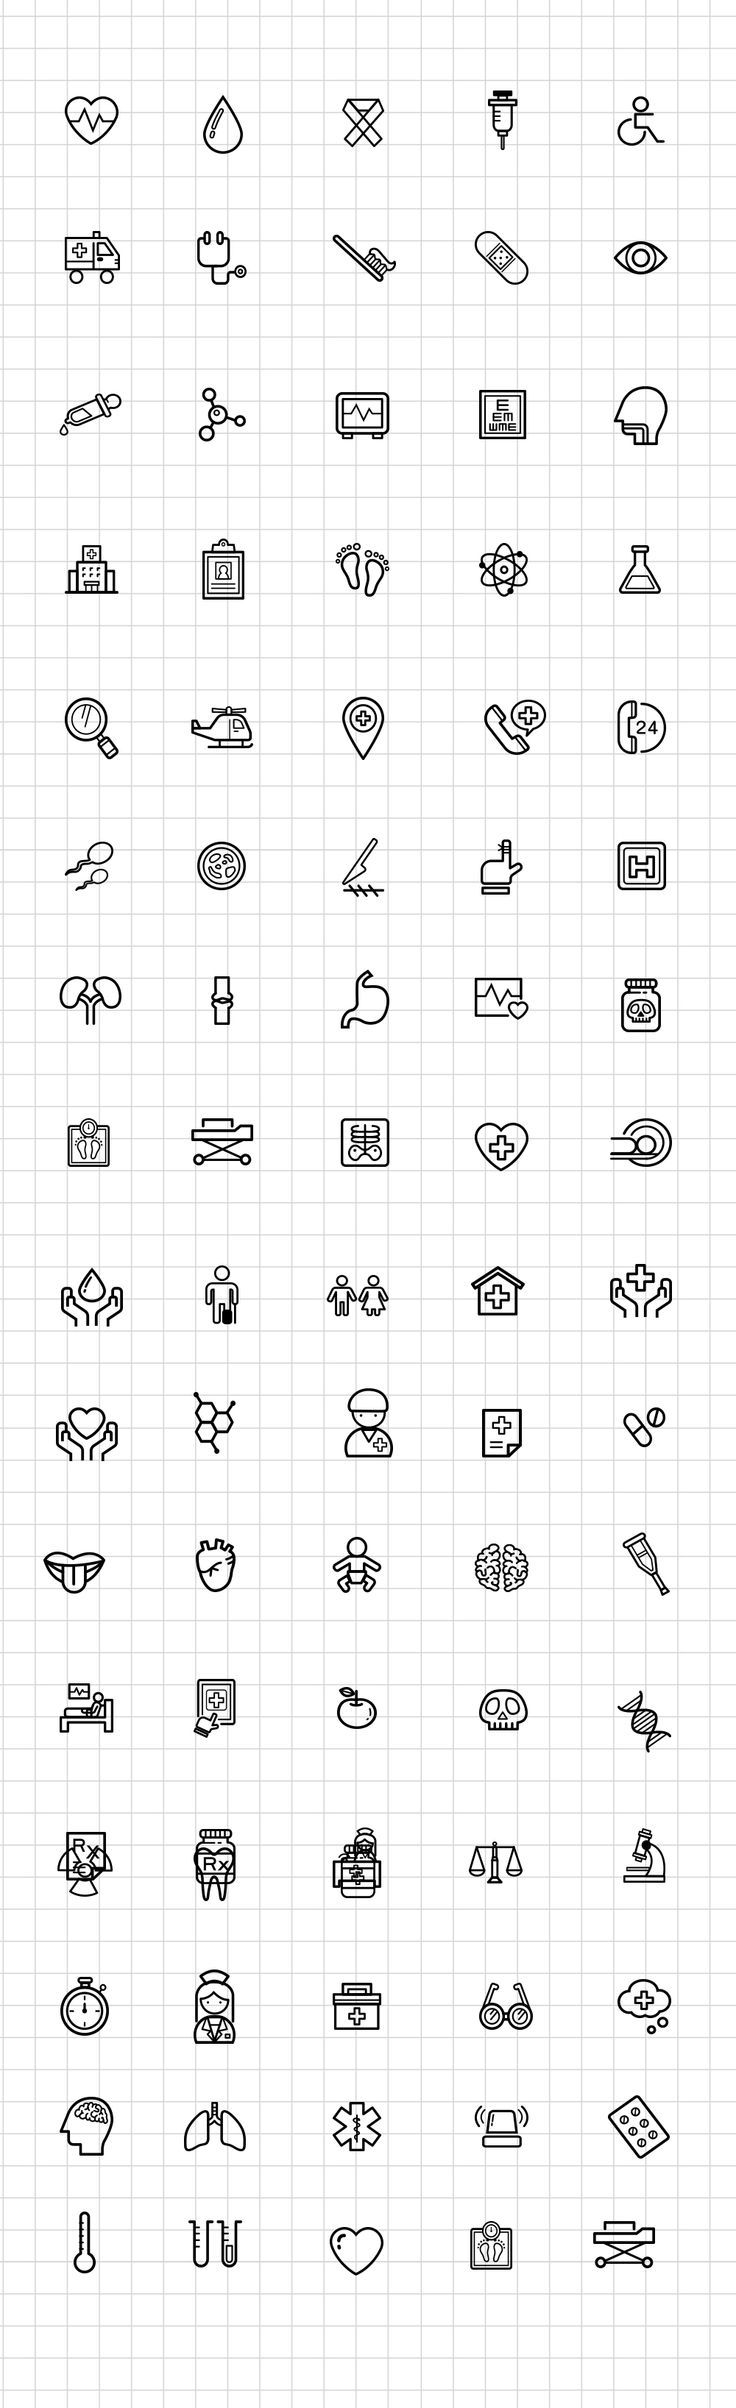 ⬇ Free download: Medical and Science Outline Icon Set Free PSD